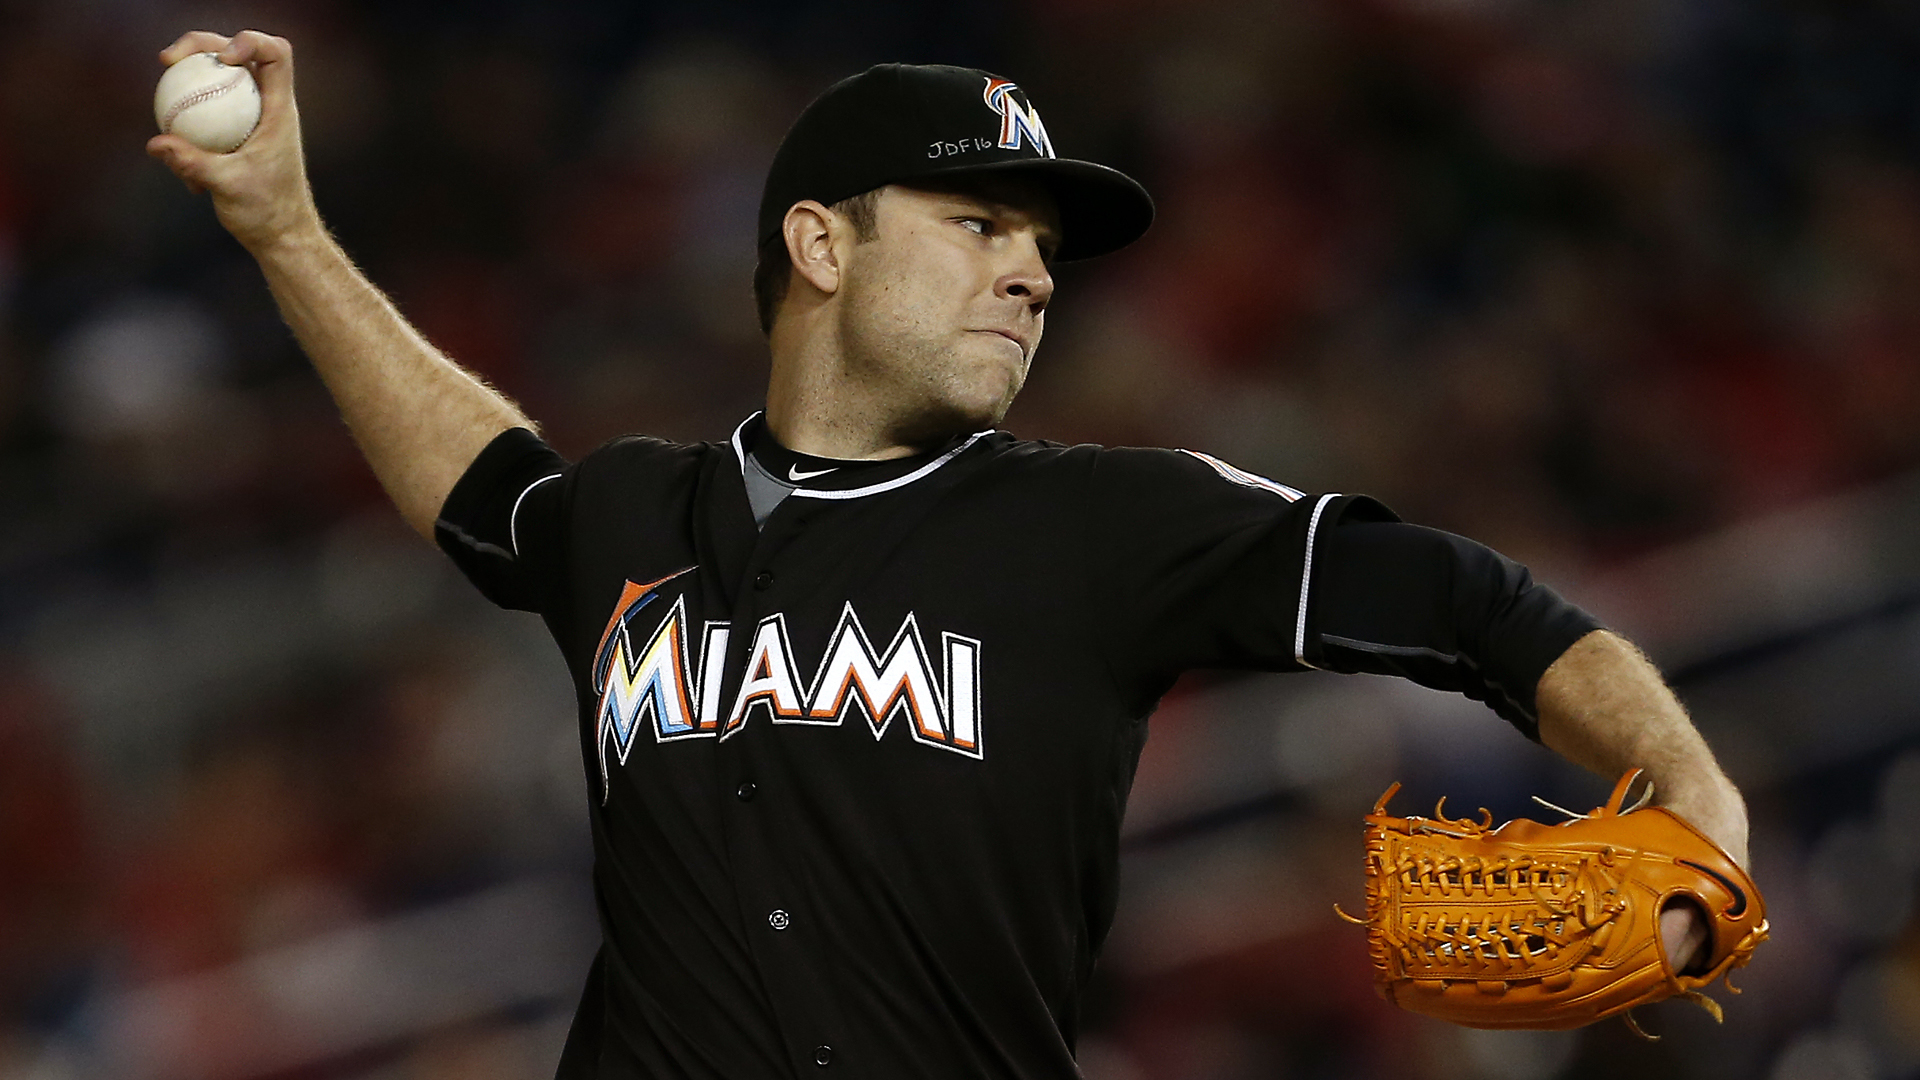 Mariners acquire reliever Phelps from Marlins